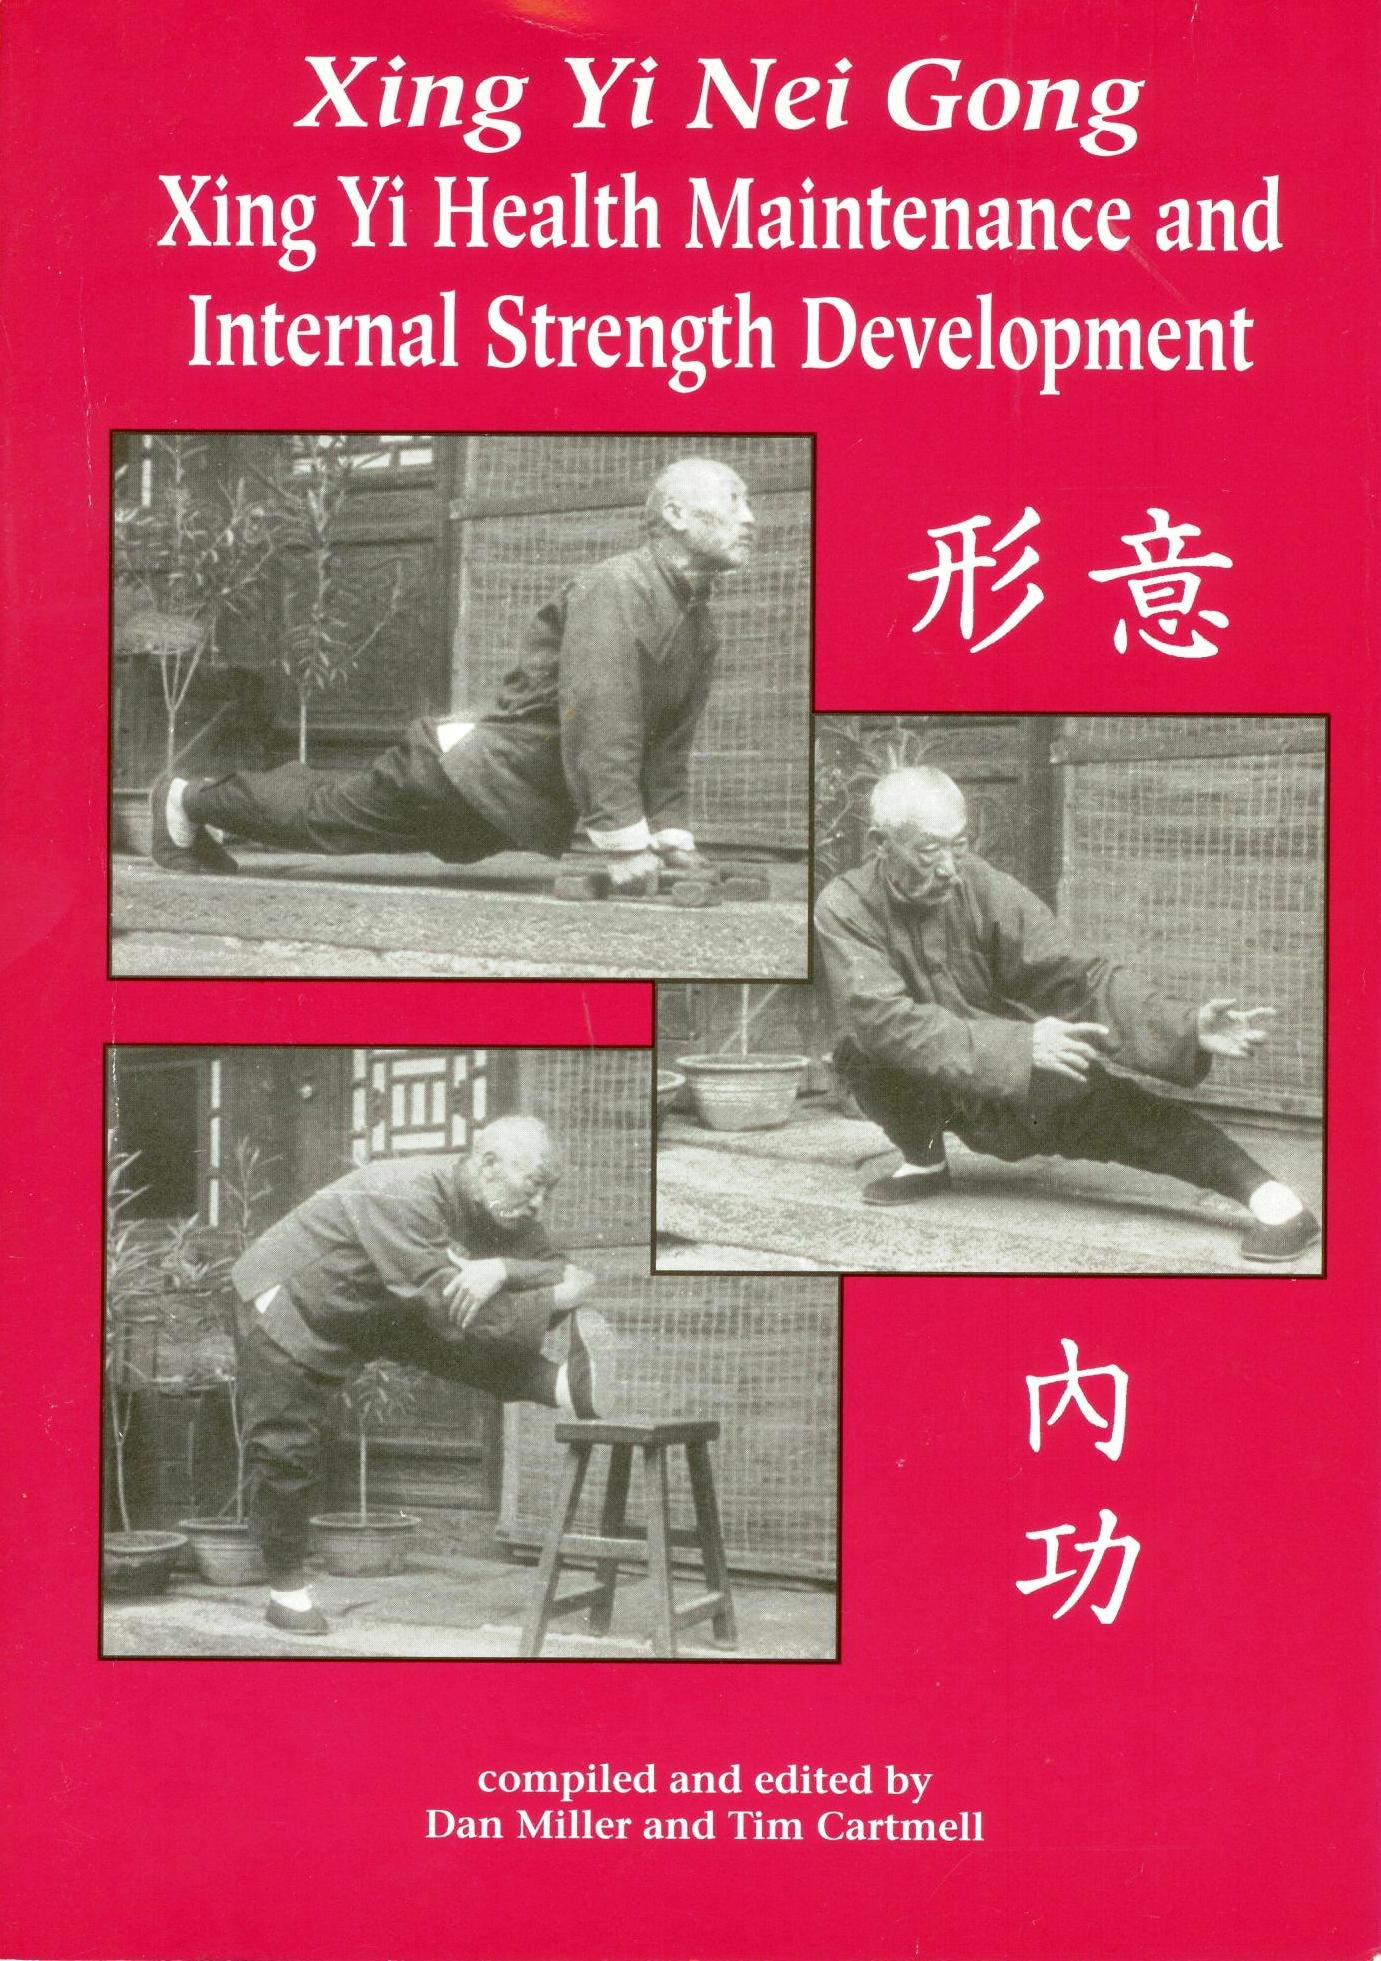 Buy Xing Yi Nei Gong: Xing Yi Health Maintenance and Internal Strength  Development Book Online at Low Prices in India | Xing Yi Nei Gong: Xing Yi  Health ...